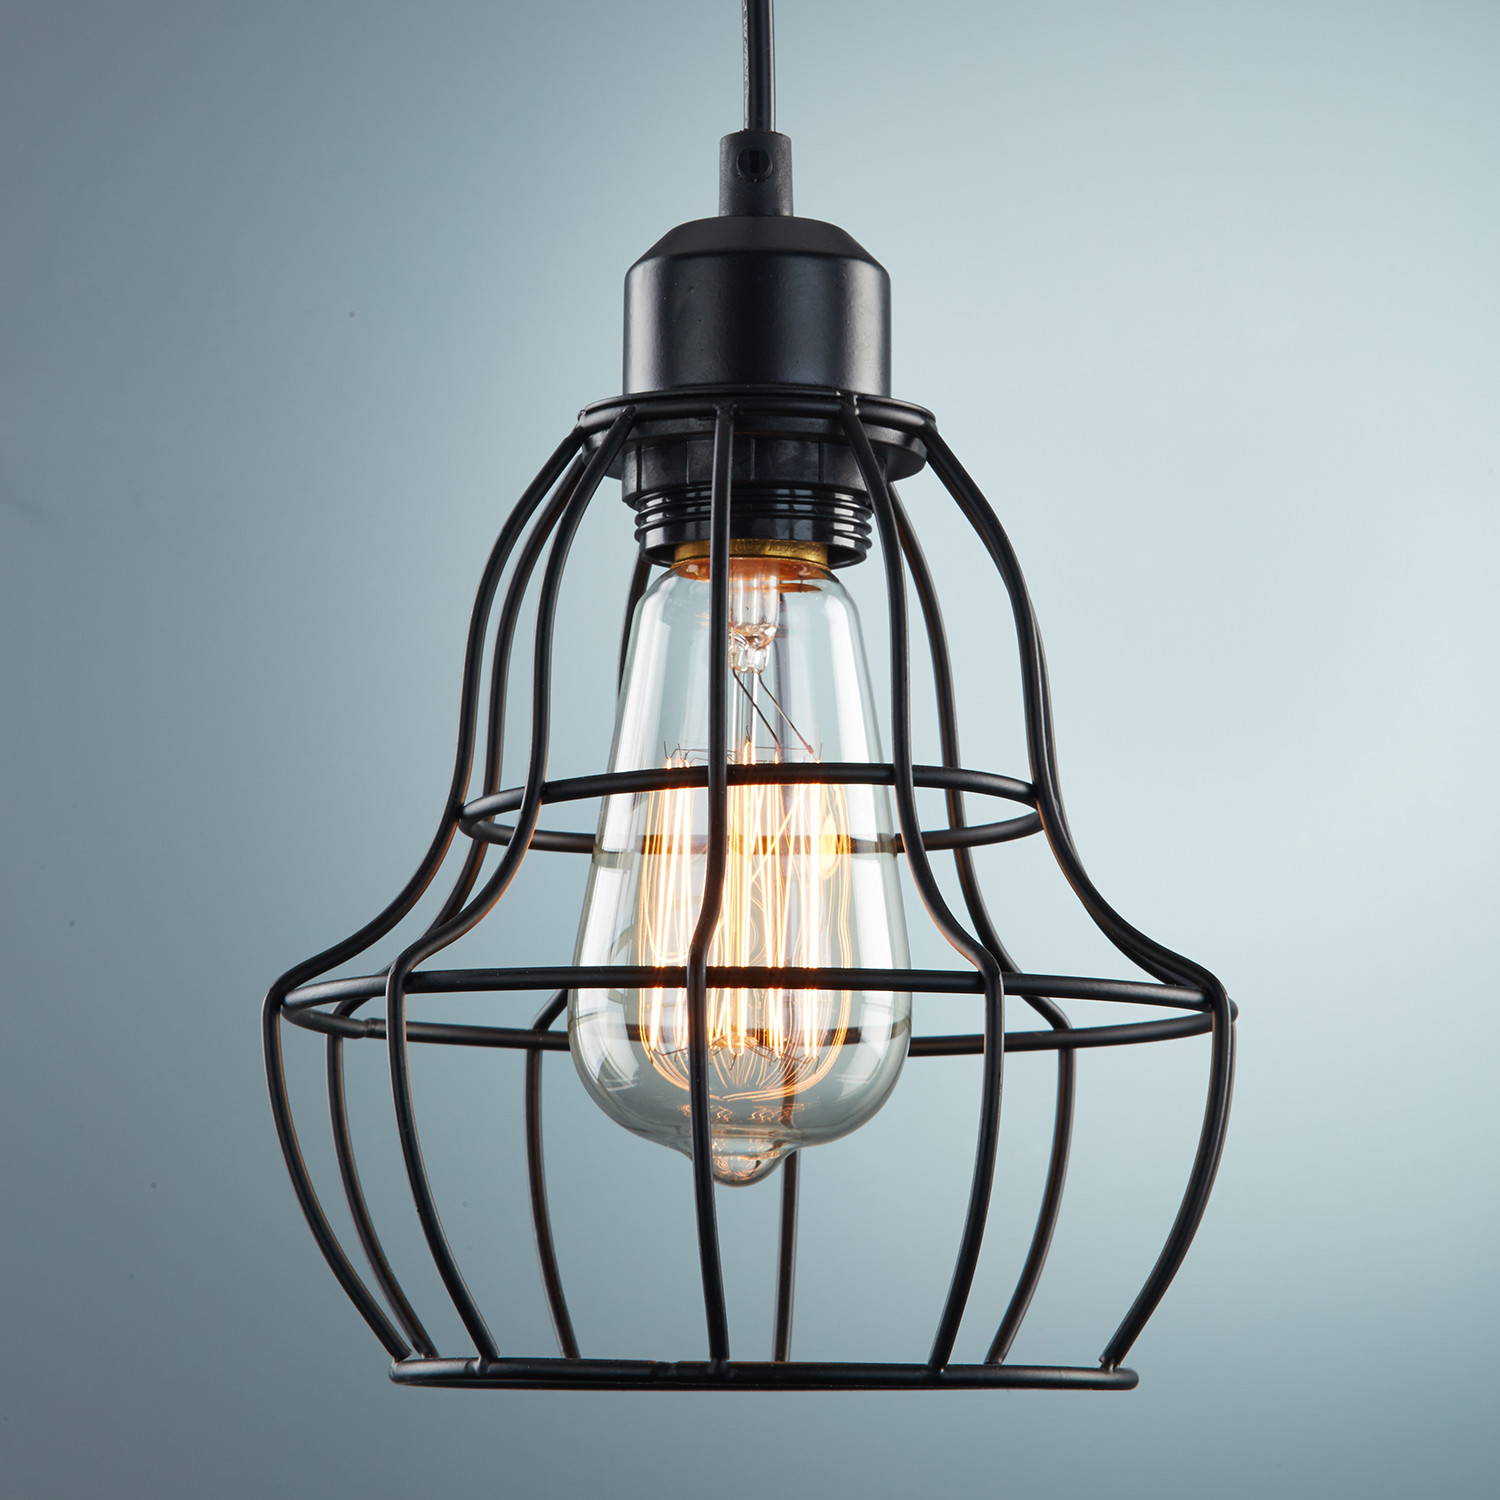 Handmade Vintage Industrial Metal Wire Cage Pendant Light